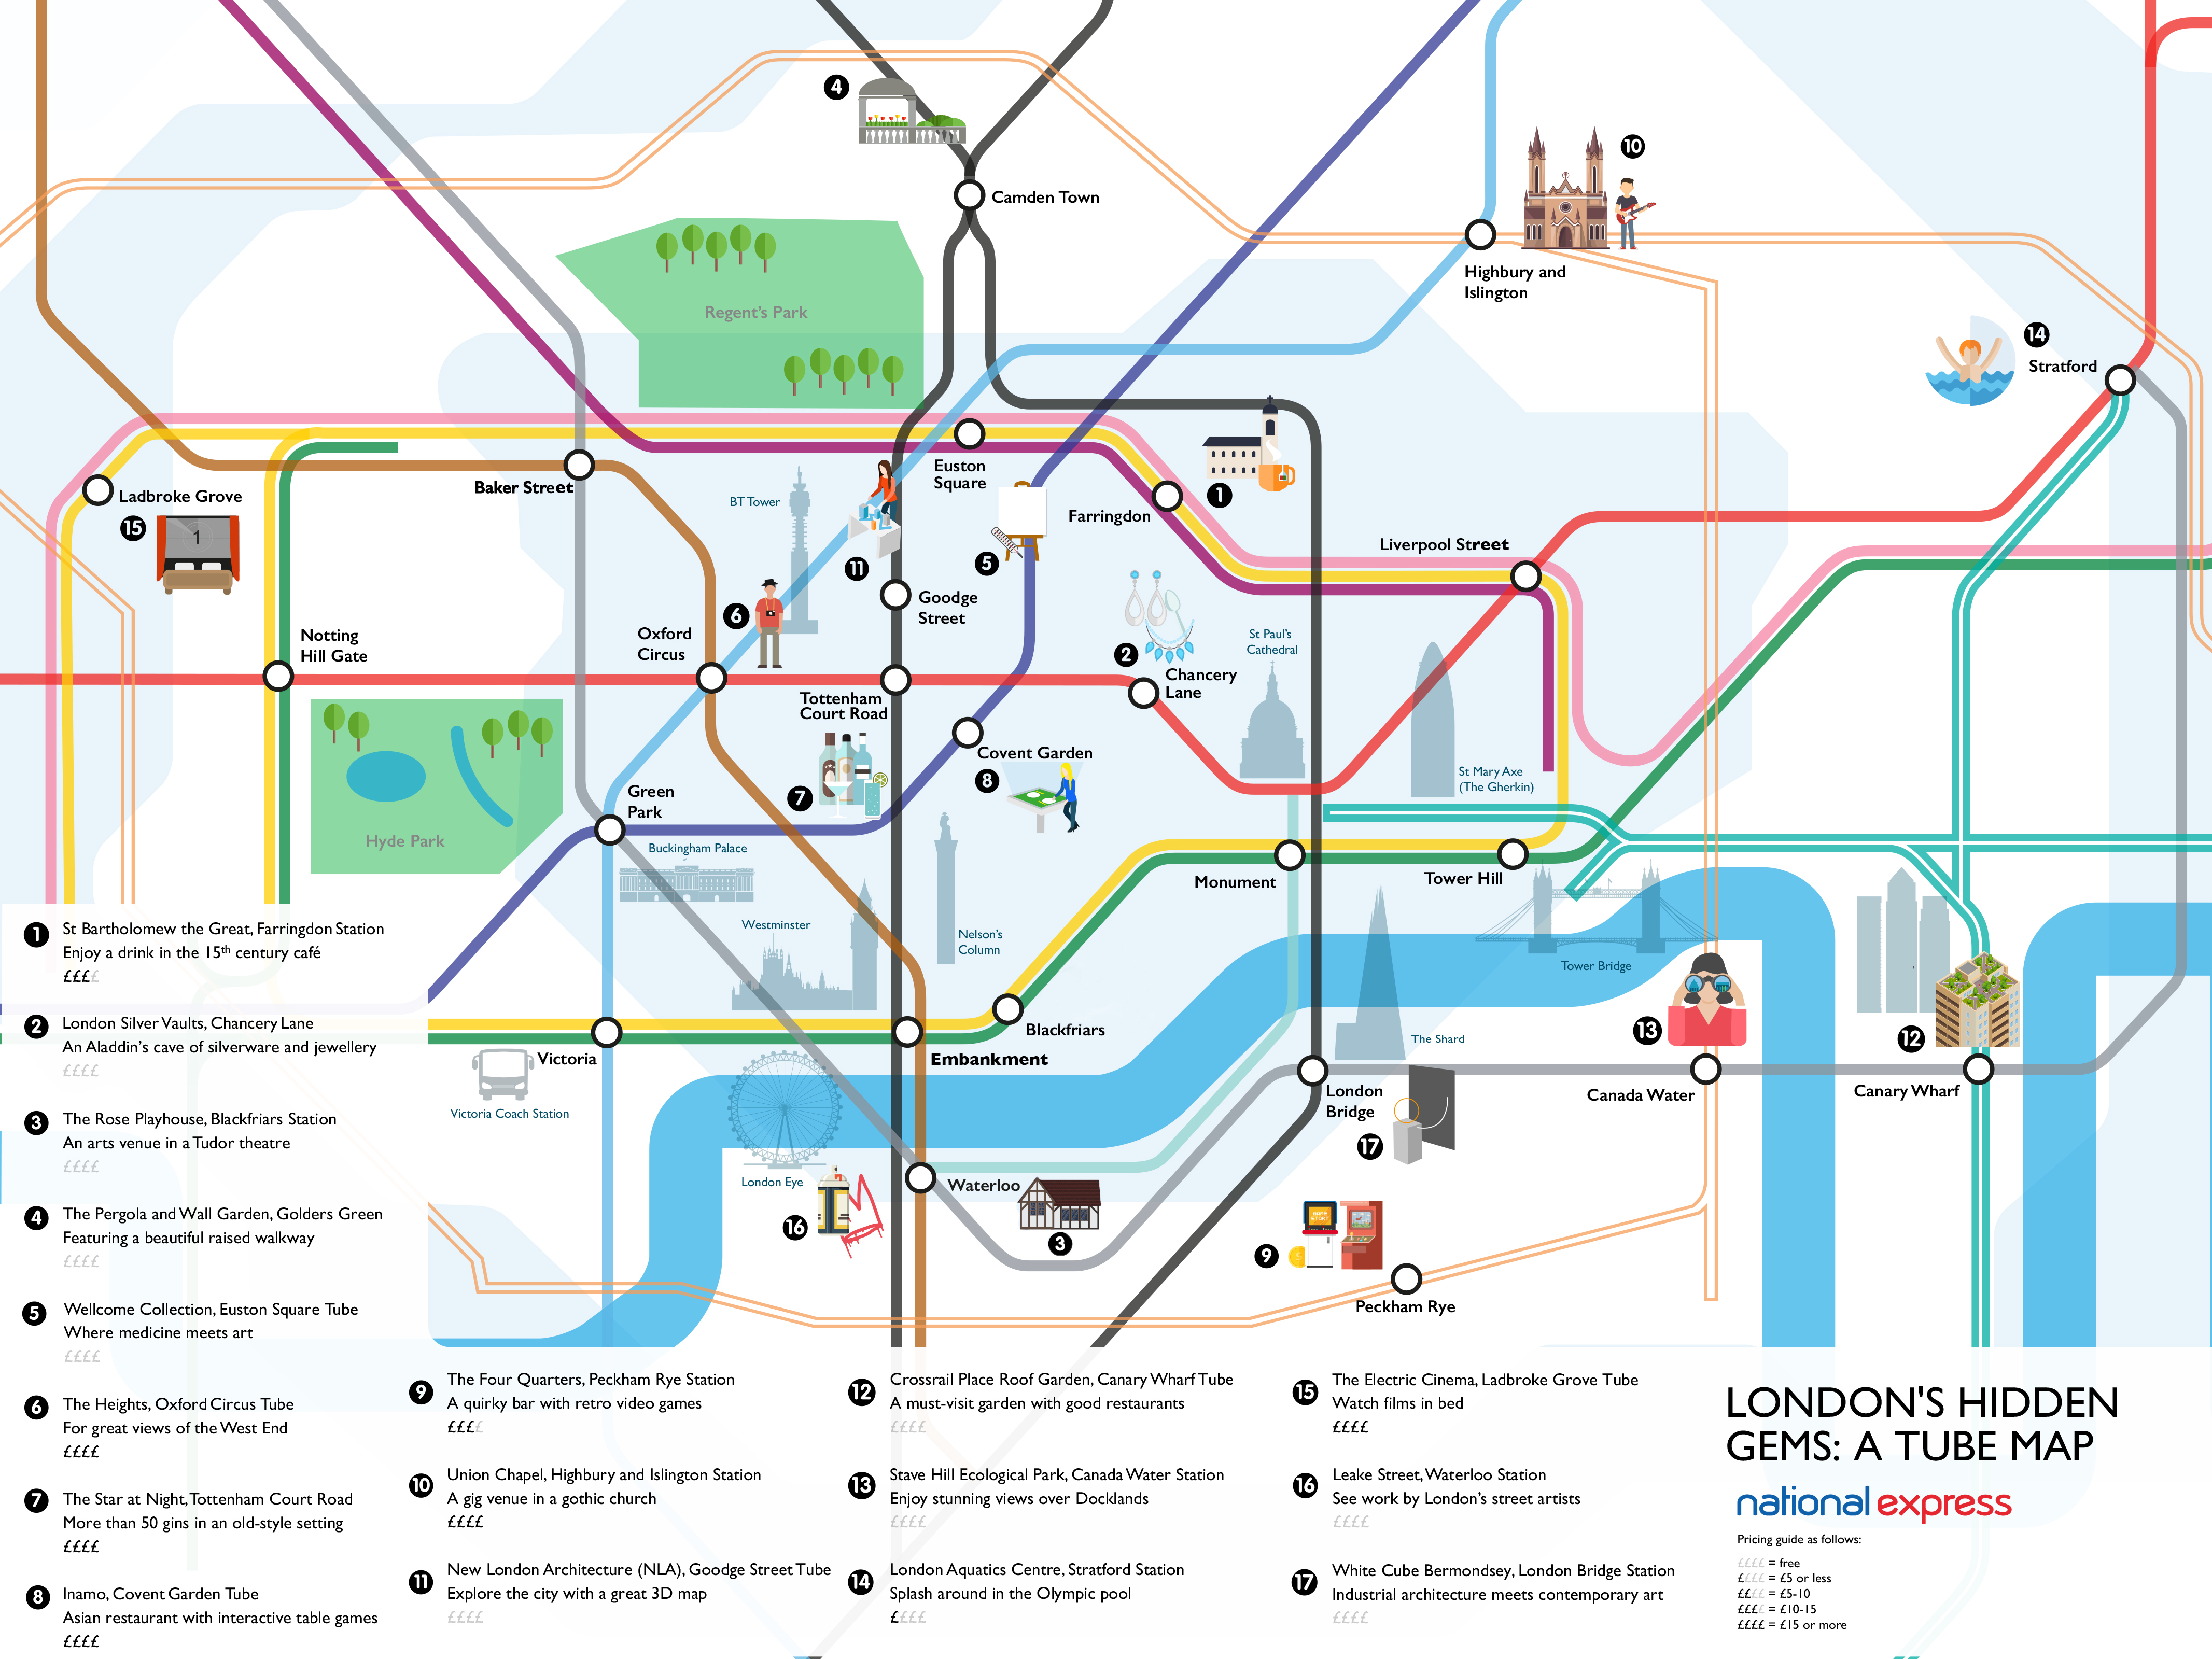 National Express Map London's Hidden Gems Revealed On A Tube Map | Londonist National Express Map